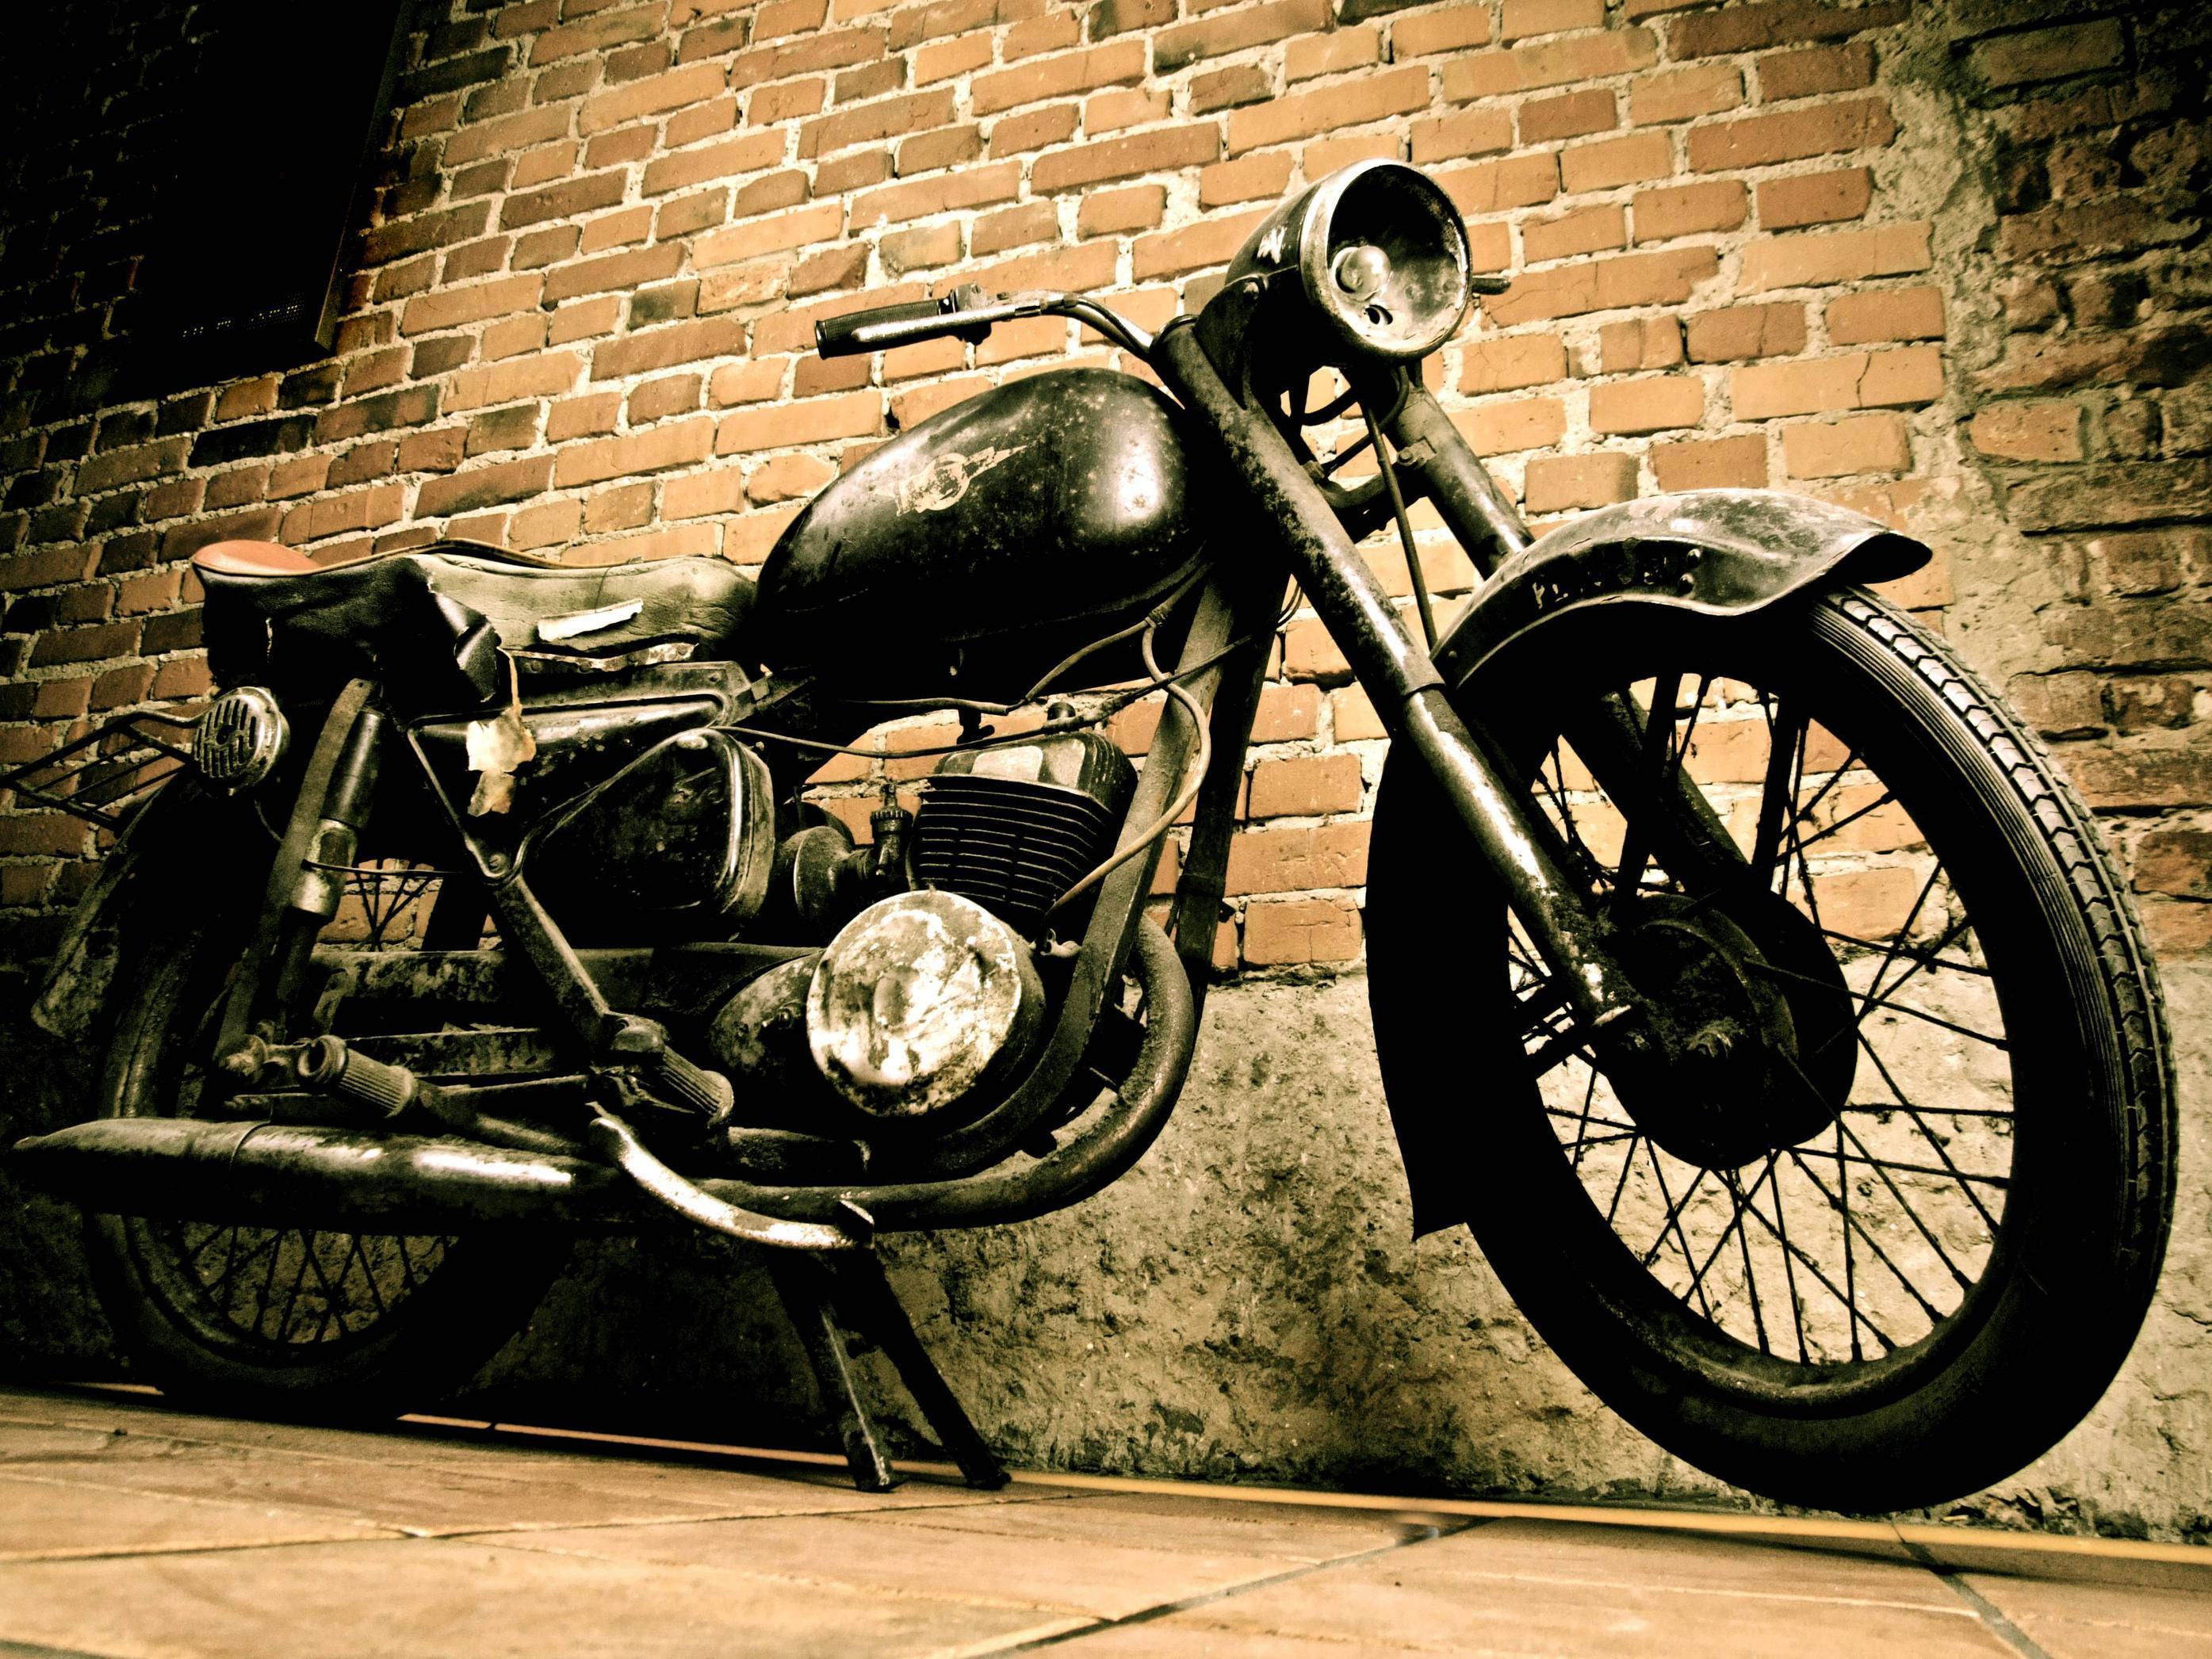 Old motor cycle photo